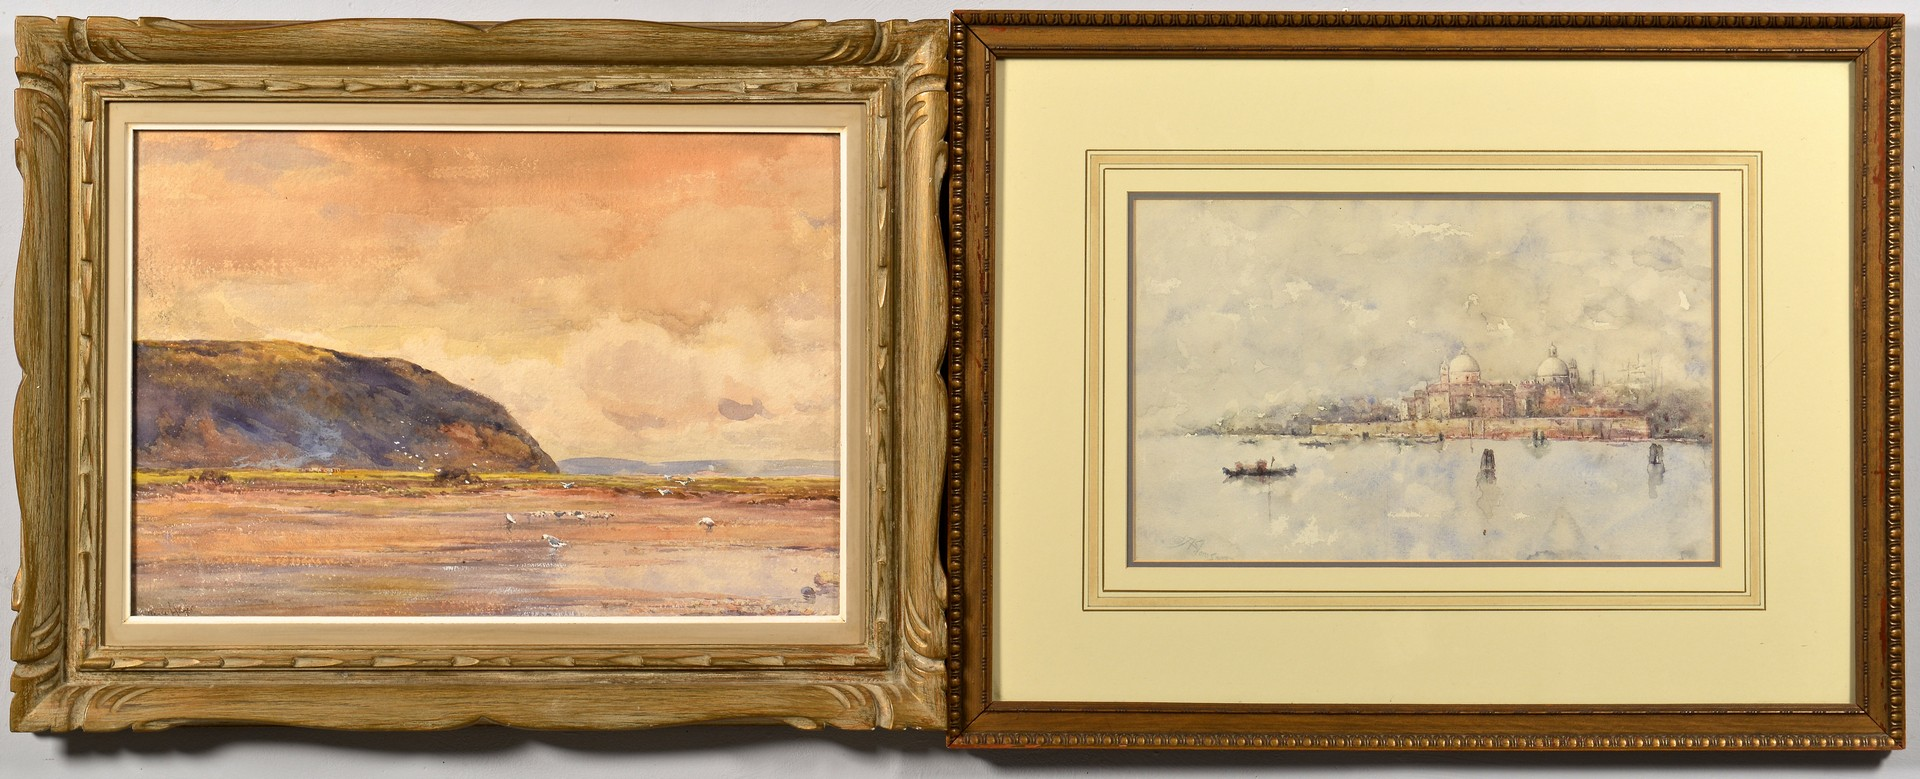 Lot 672: Two Watercolor Seascapes, signed